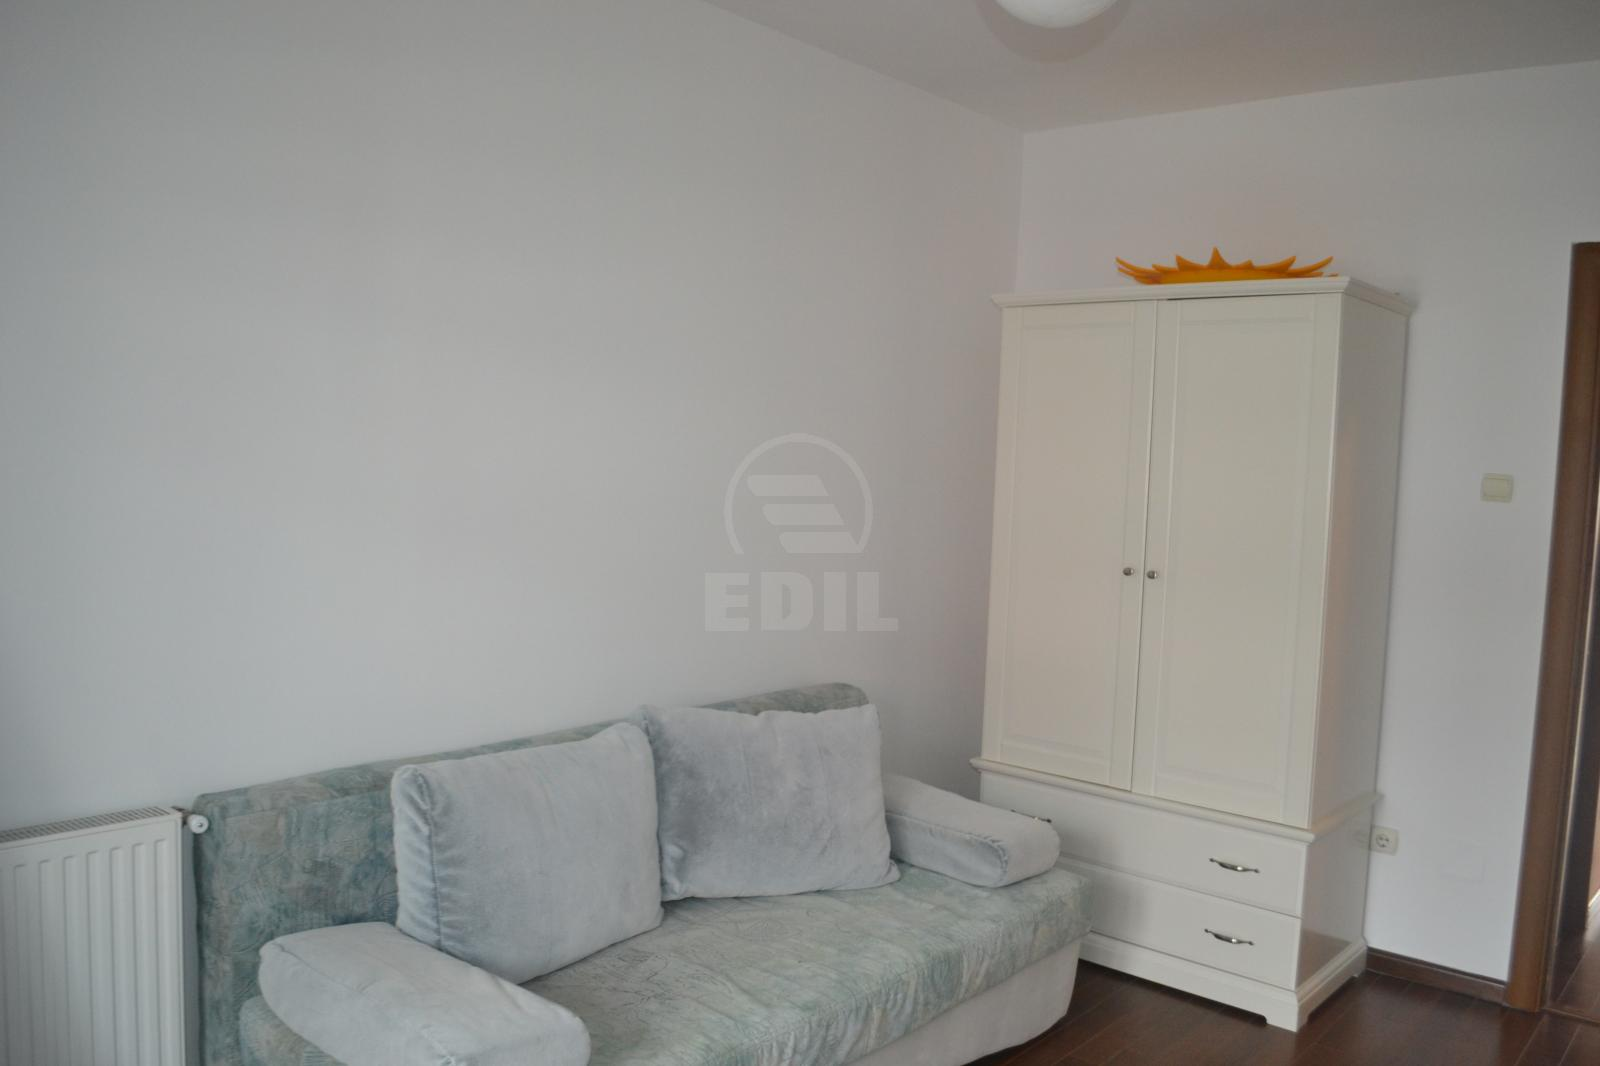 Apartment for rent 3 rooms, APCJ271208-8